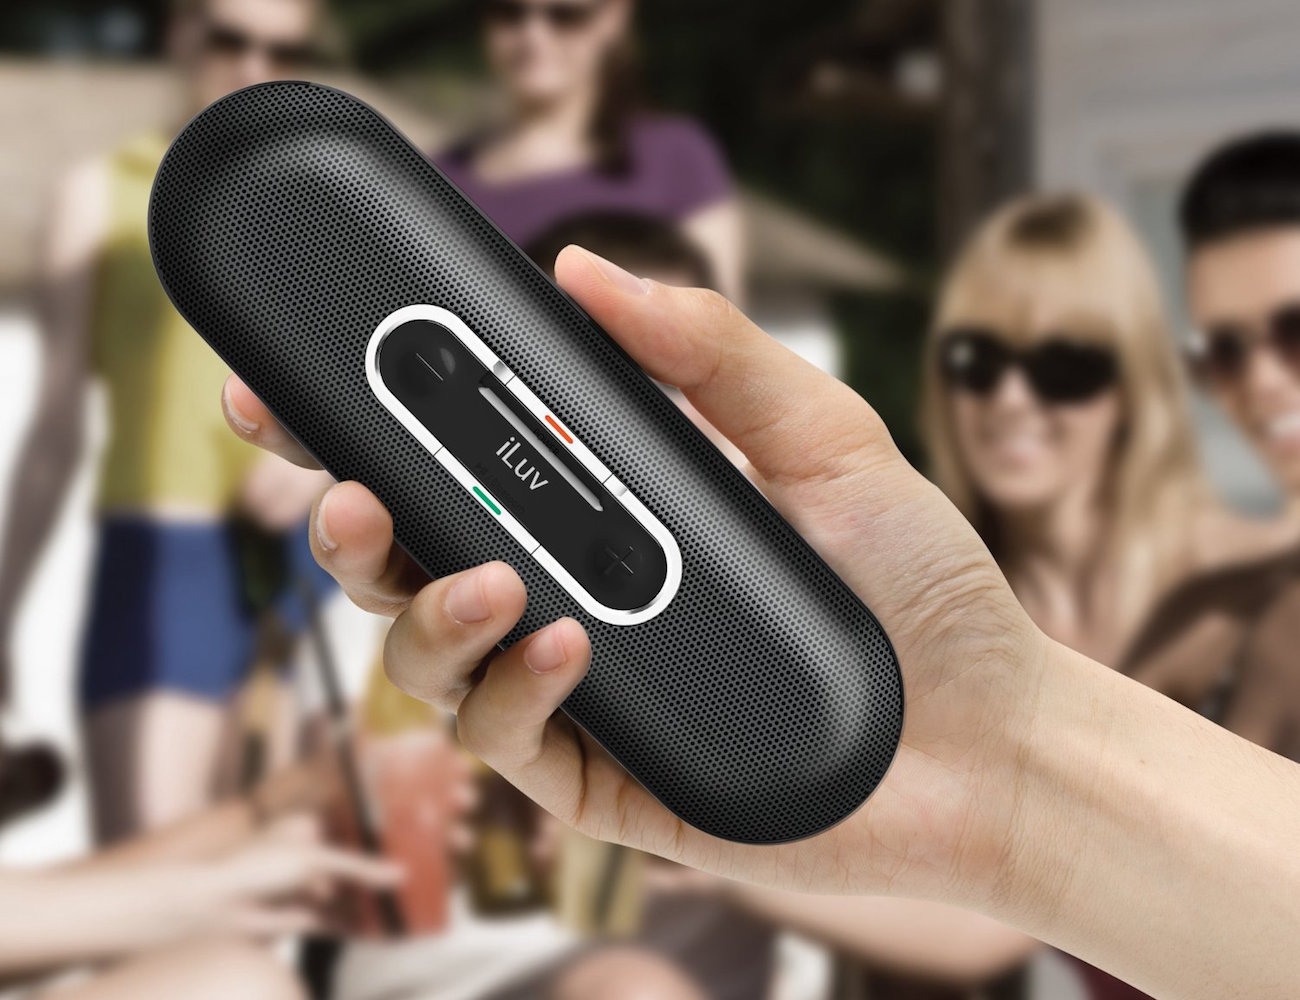 Kick back and turn up the tunes anywhere you go with the Rollick Wireless Bluetooth Speaker by iLuv.